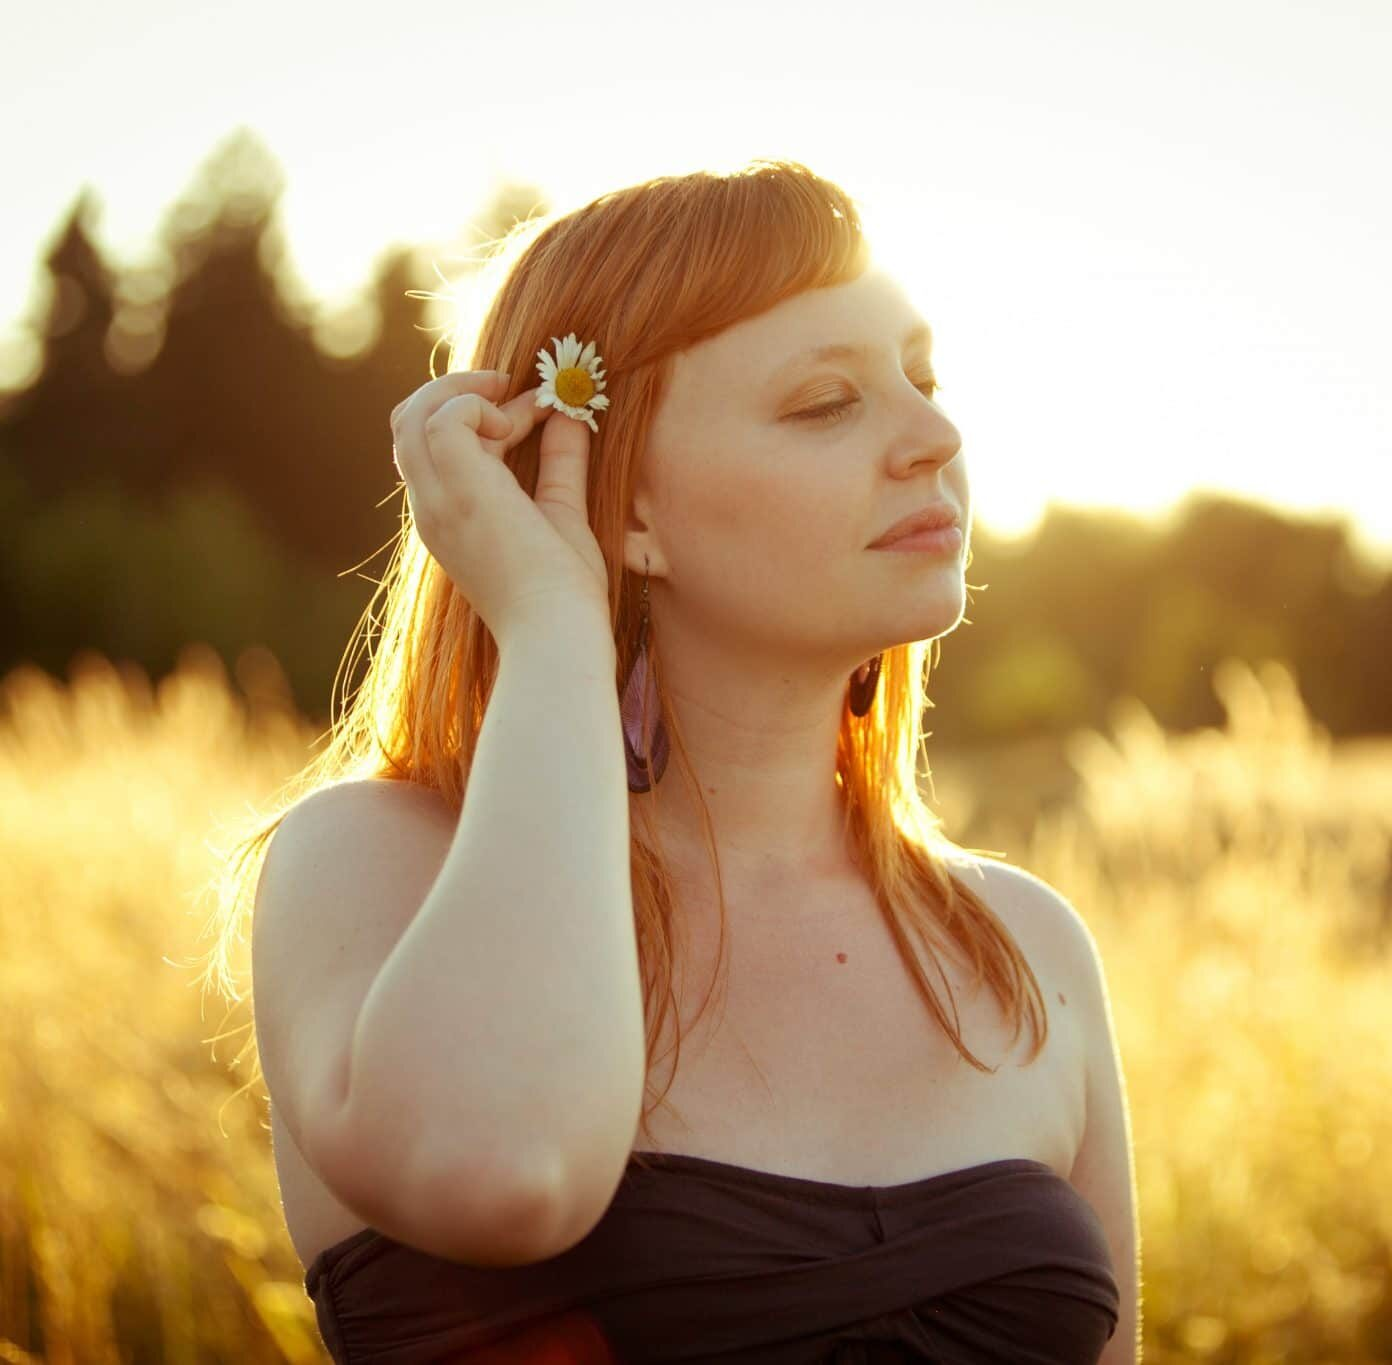 a girl putting a flower behind her ear in a meadow.